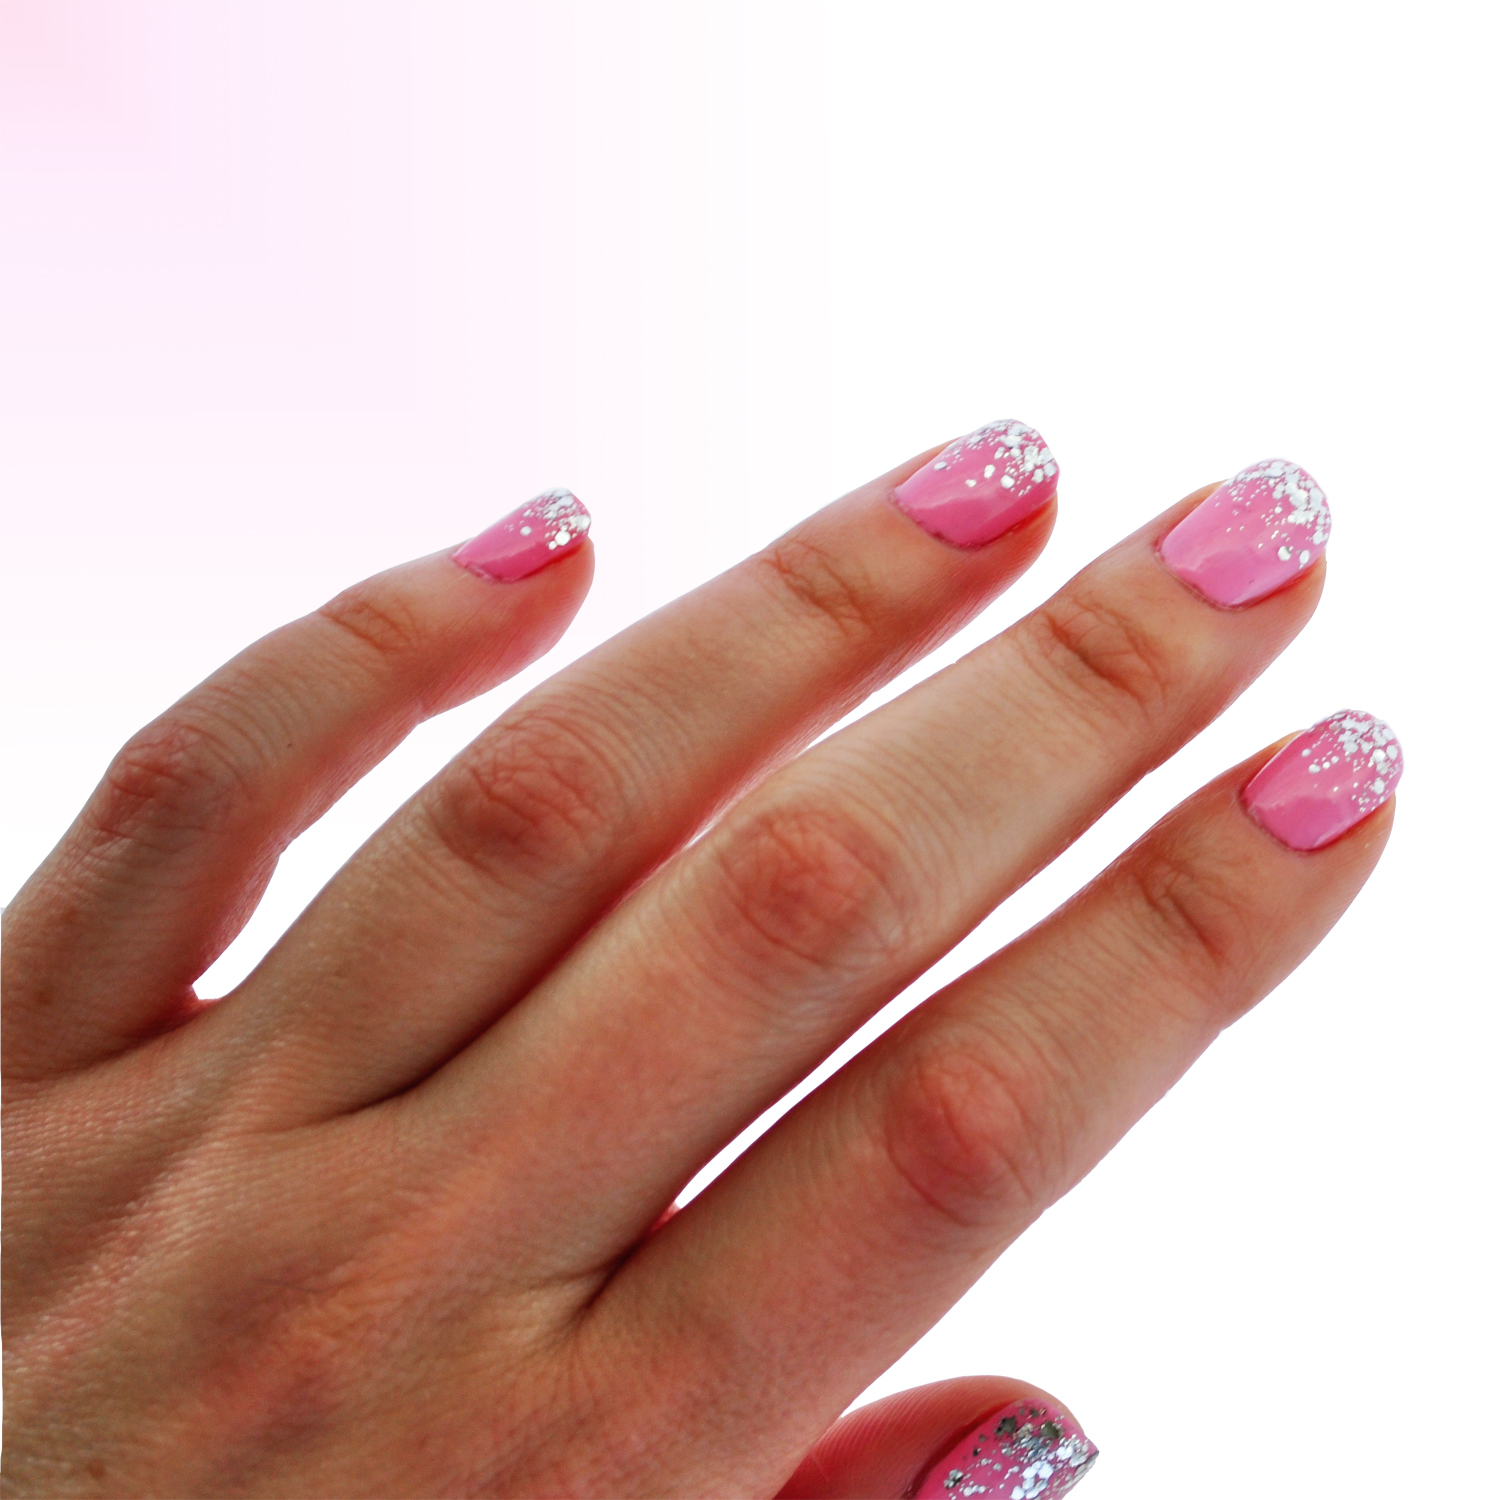 Bubble Gum Nail Art: Ditty Drops: Confetti Bubblegum Nail Art